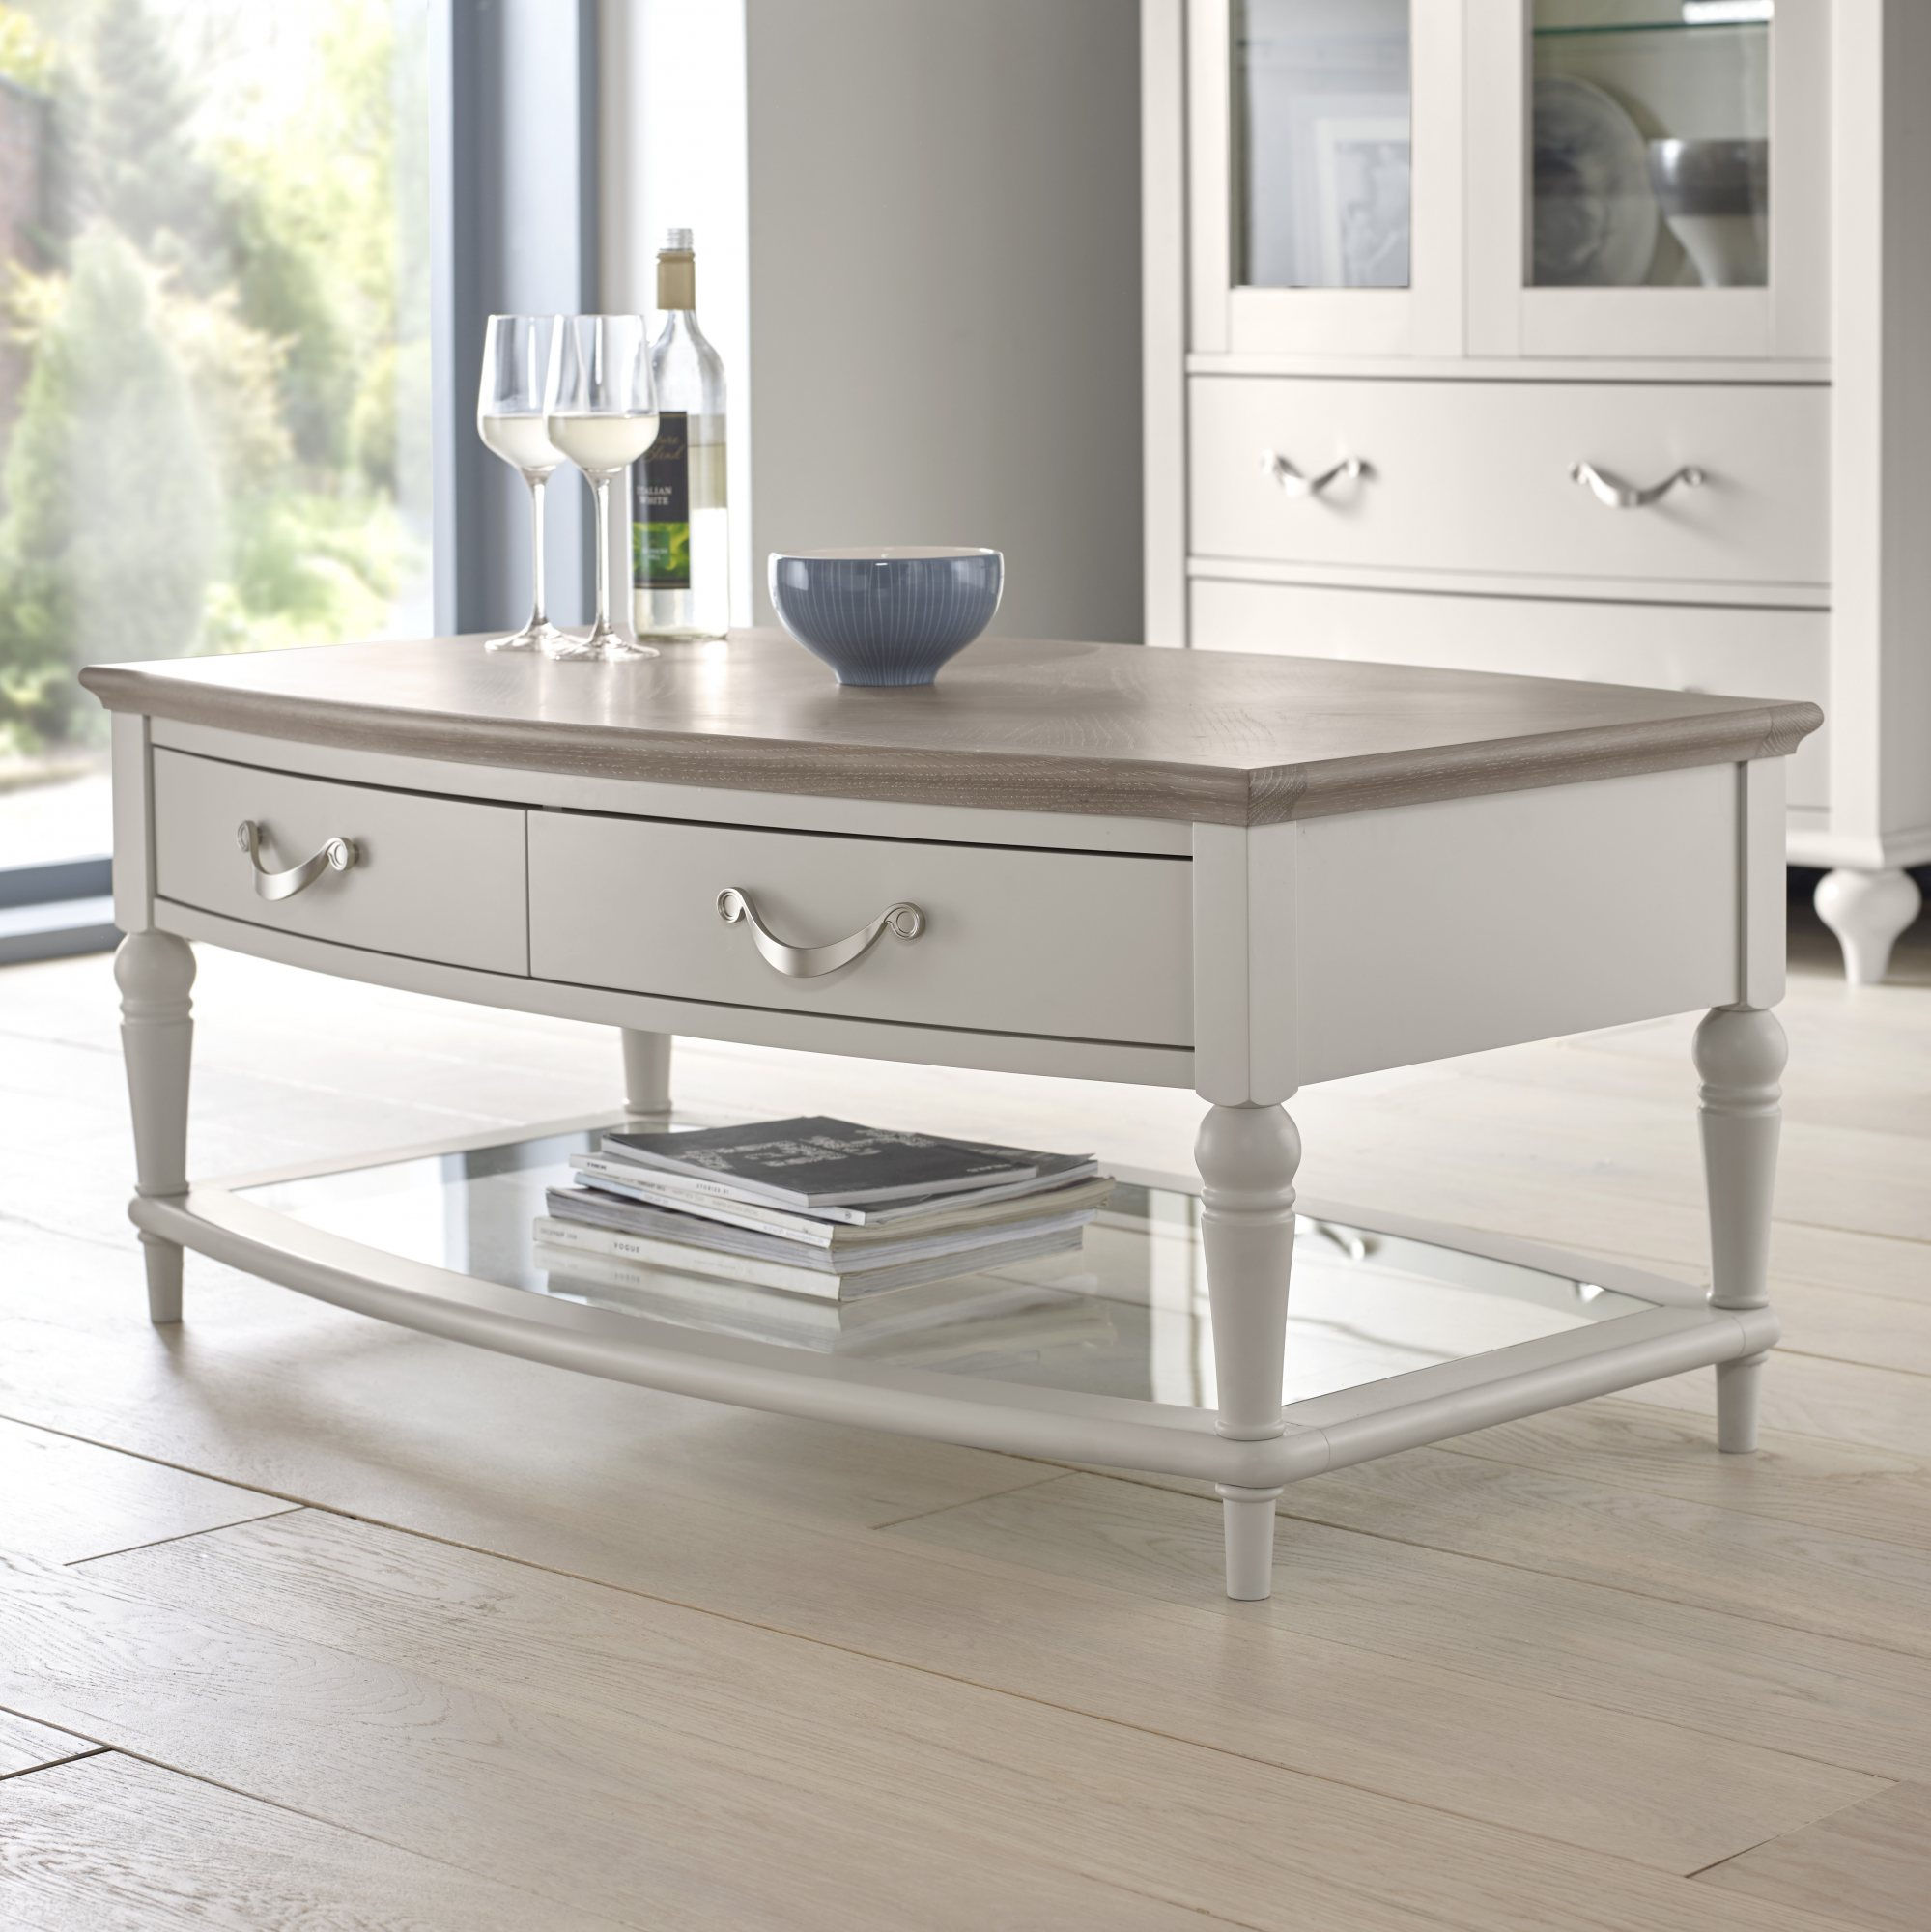 MONICA GREY COFEE TABLE - L108cm x D64cm x H46cm